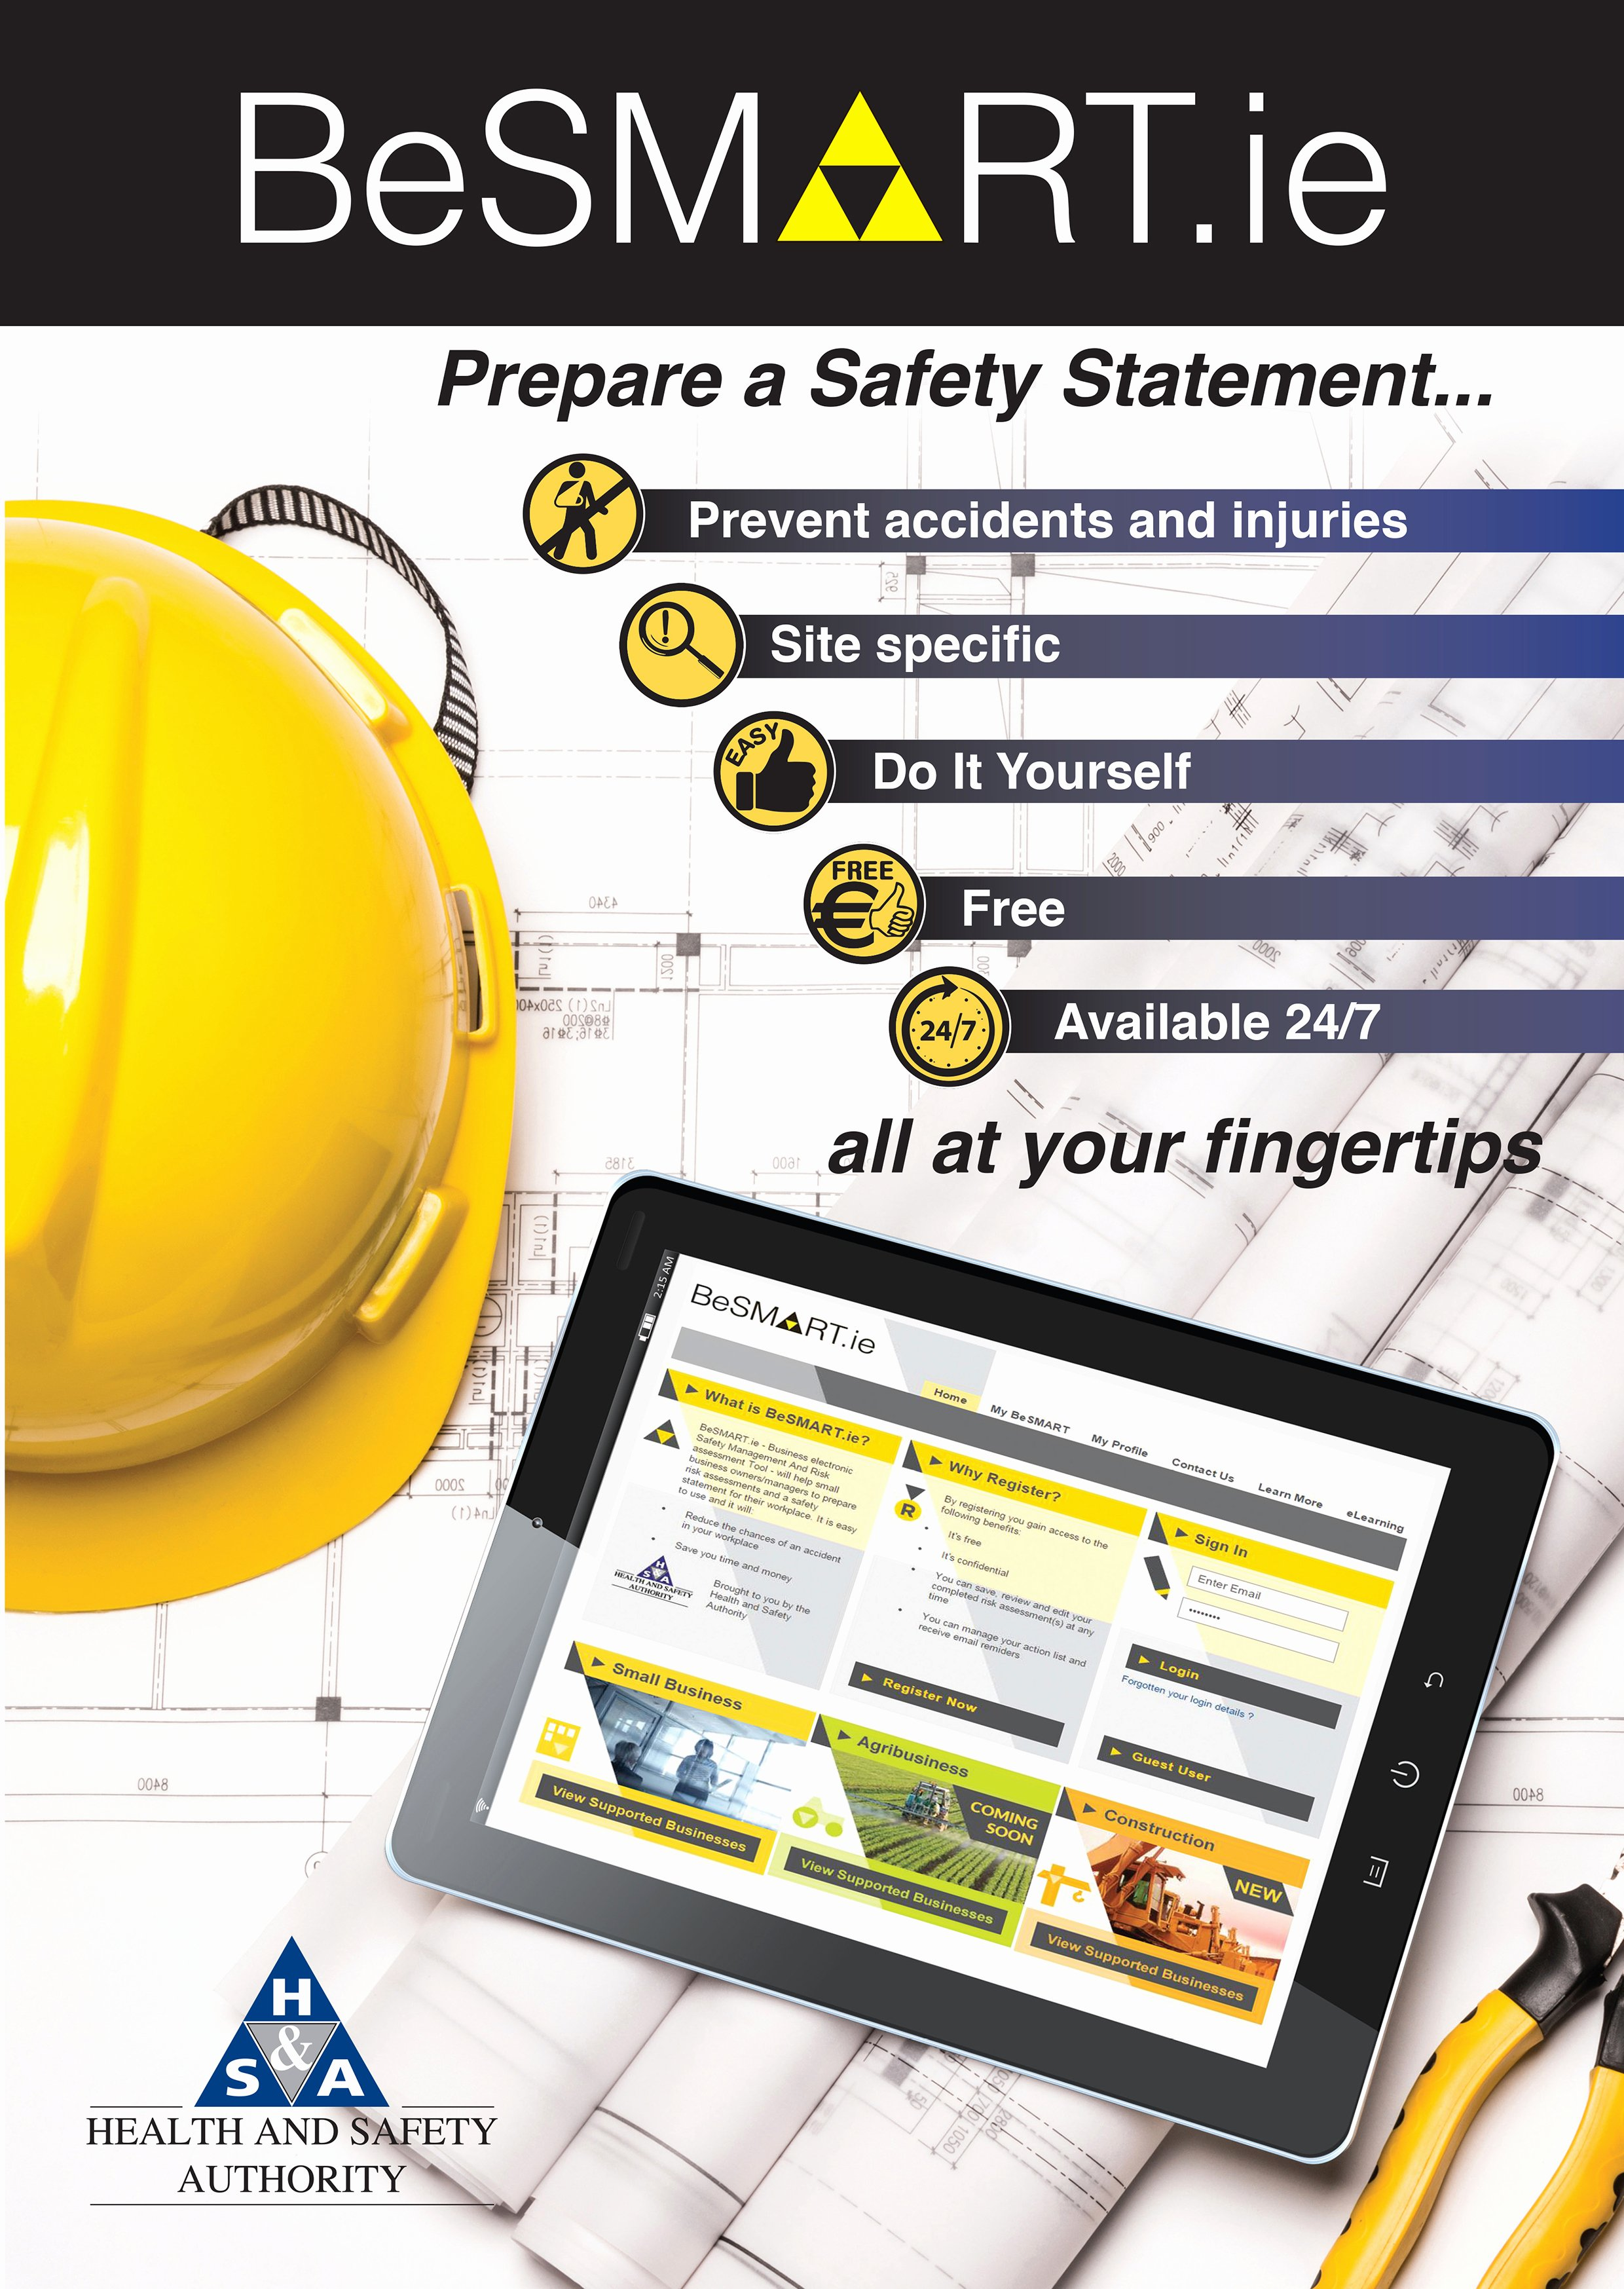 Besmart for Construction Health and Safety Authority